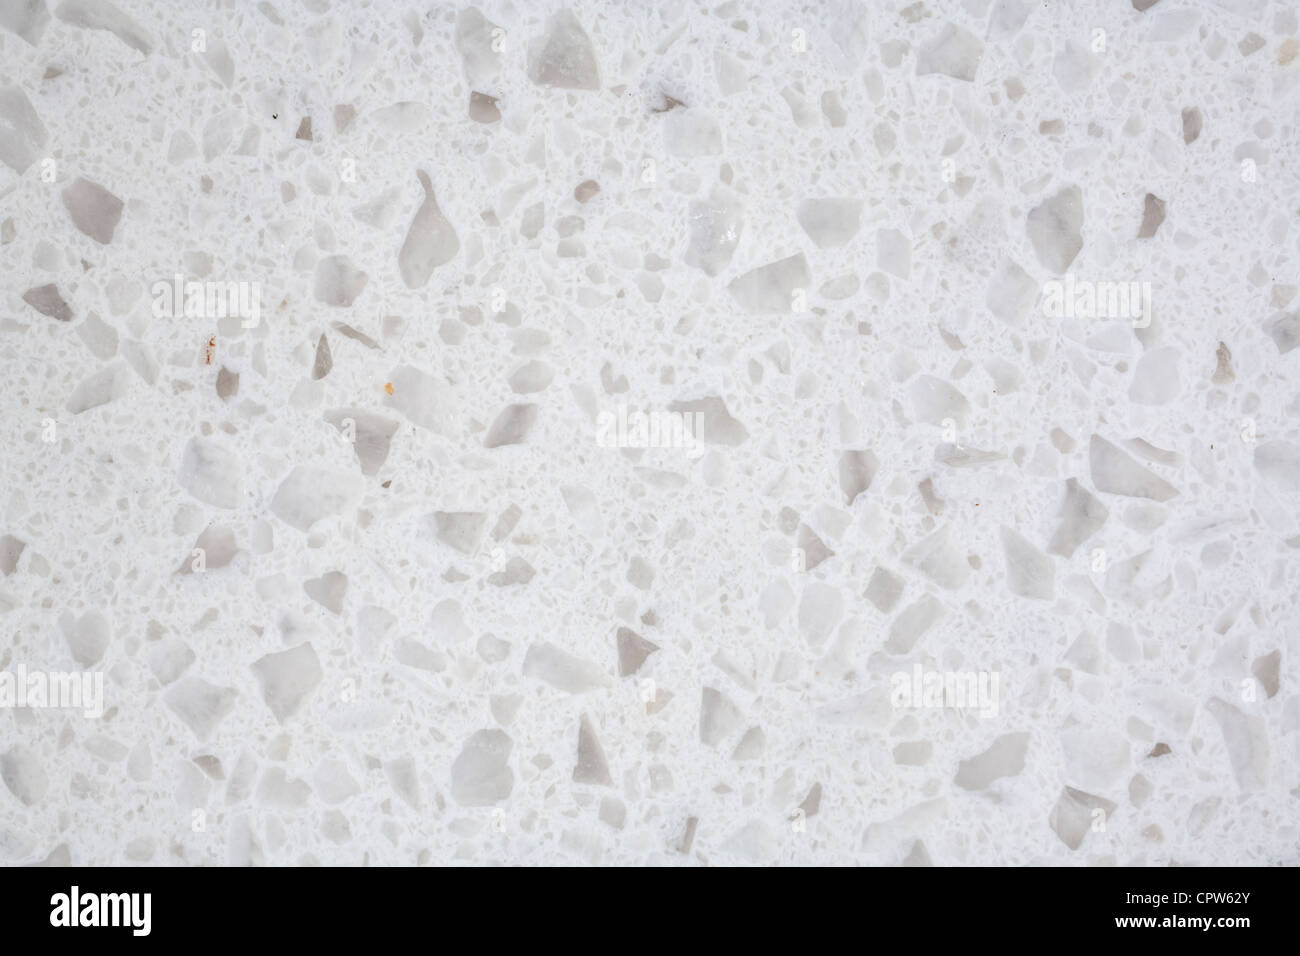 Closeup of a piece of cultured or composite granite, made from stone chips in a synthetic resin. - Stock Image